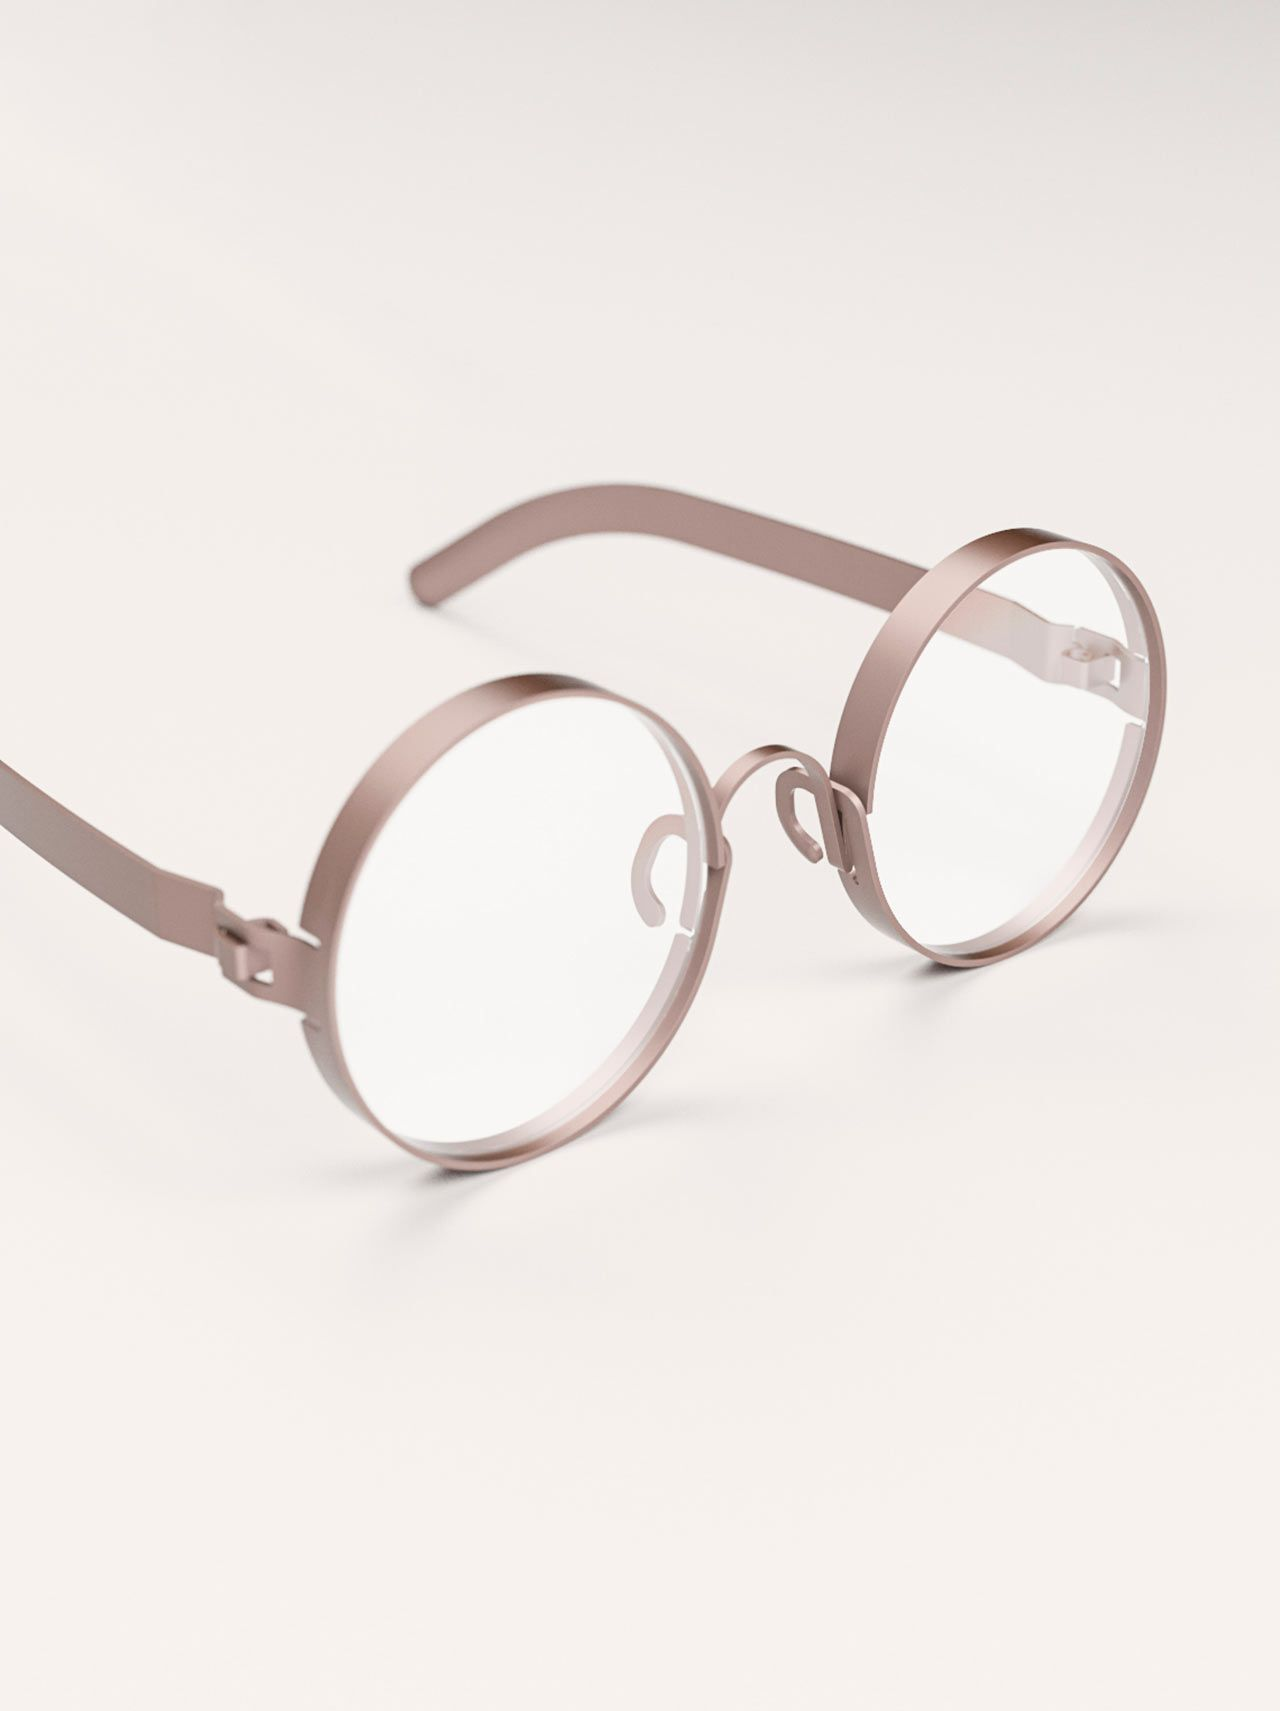 267889f5ed FRAME  Eyeglasses Cut From Sheet Metal to Reduce Waste